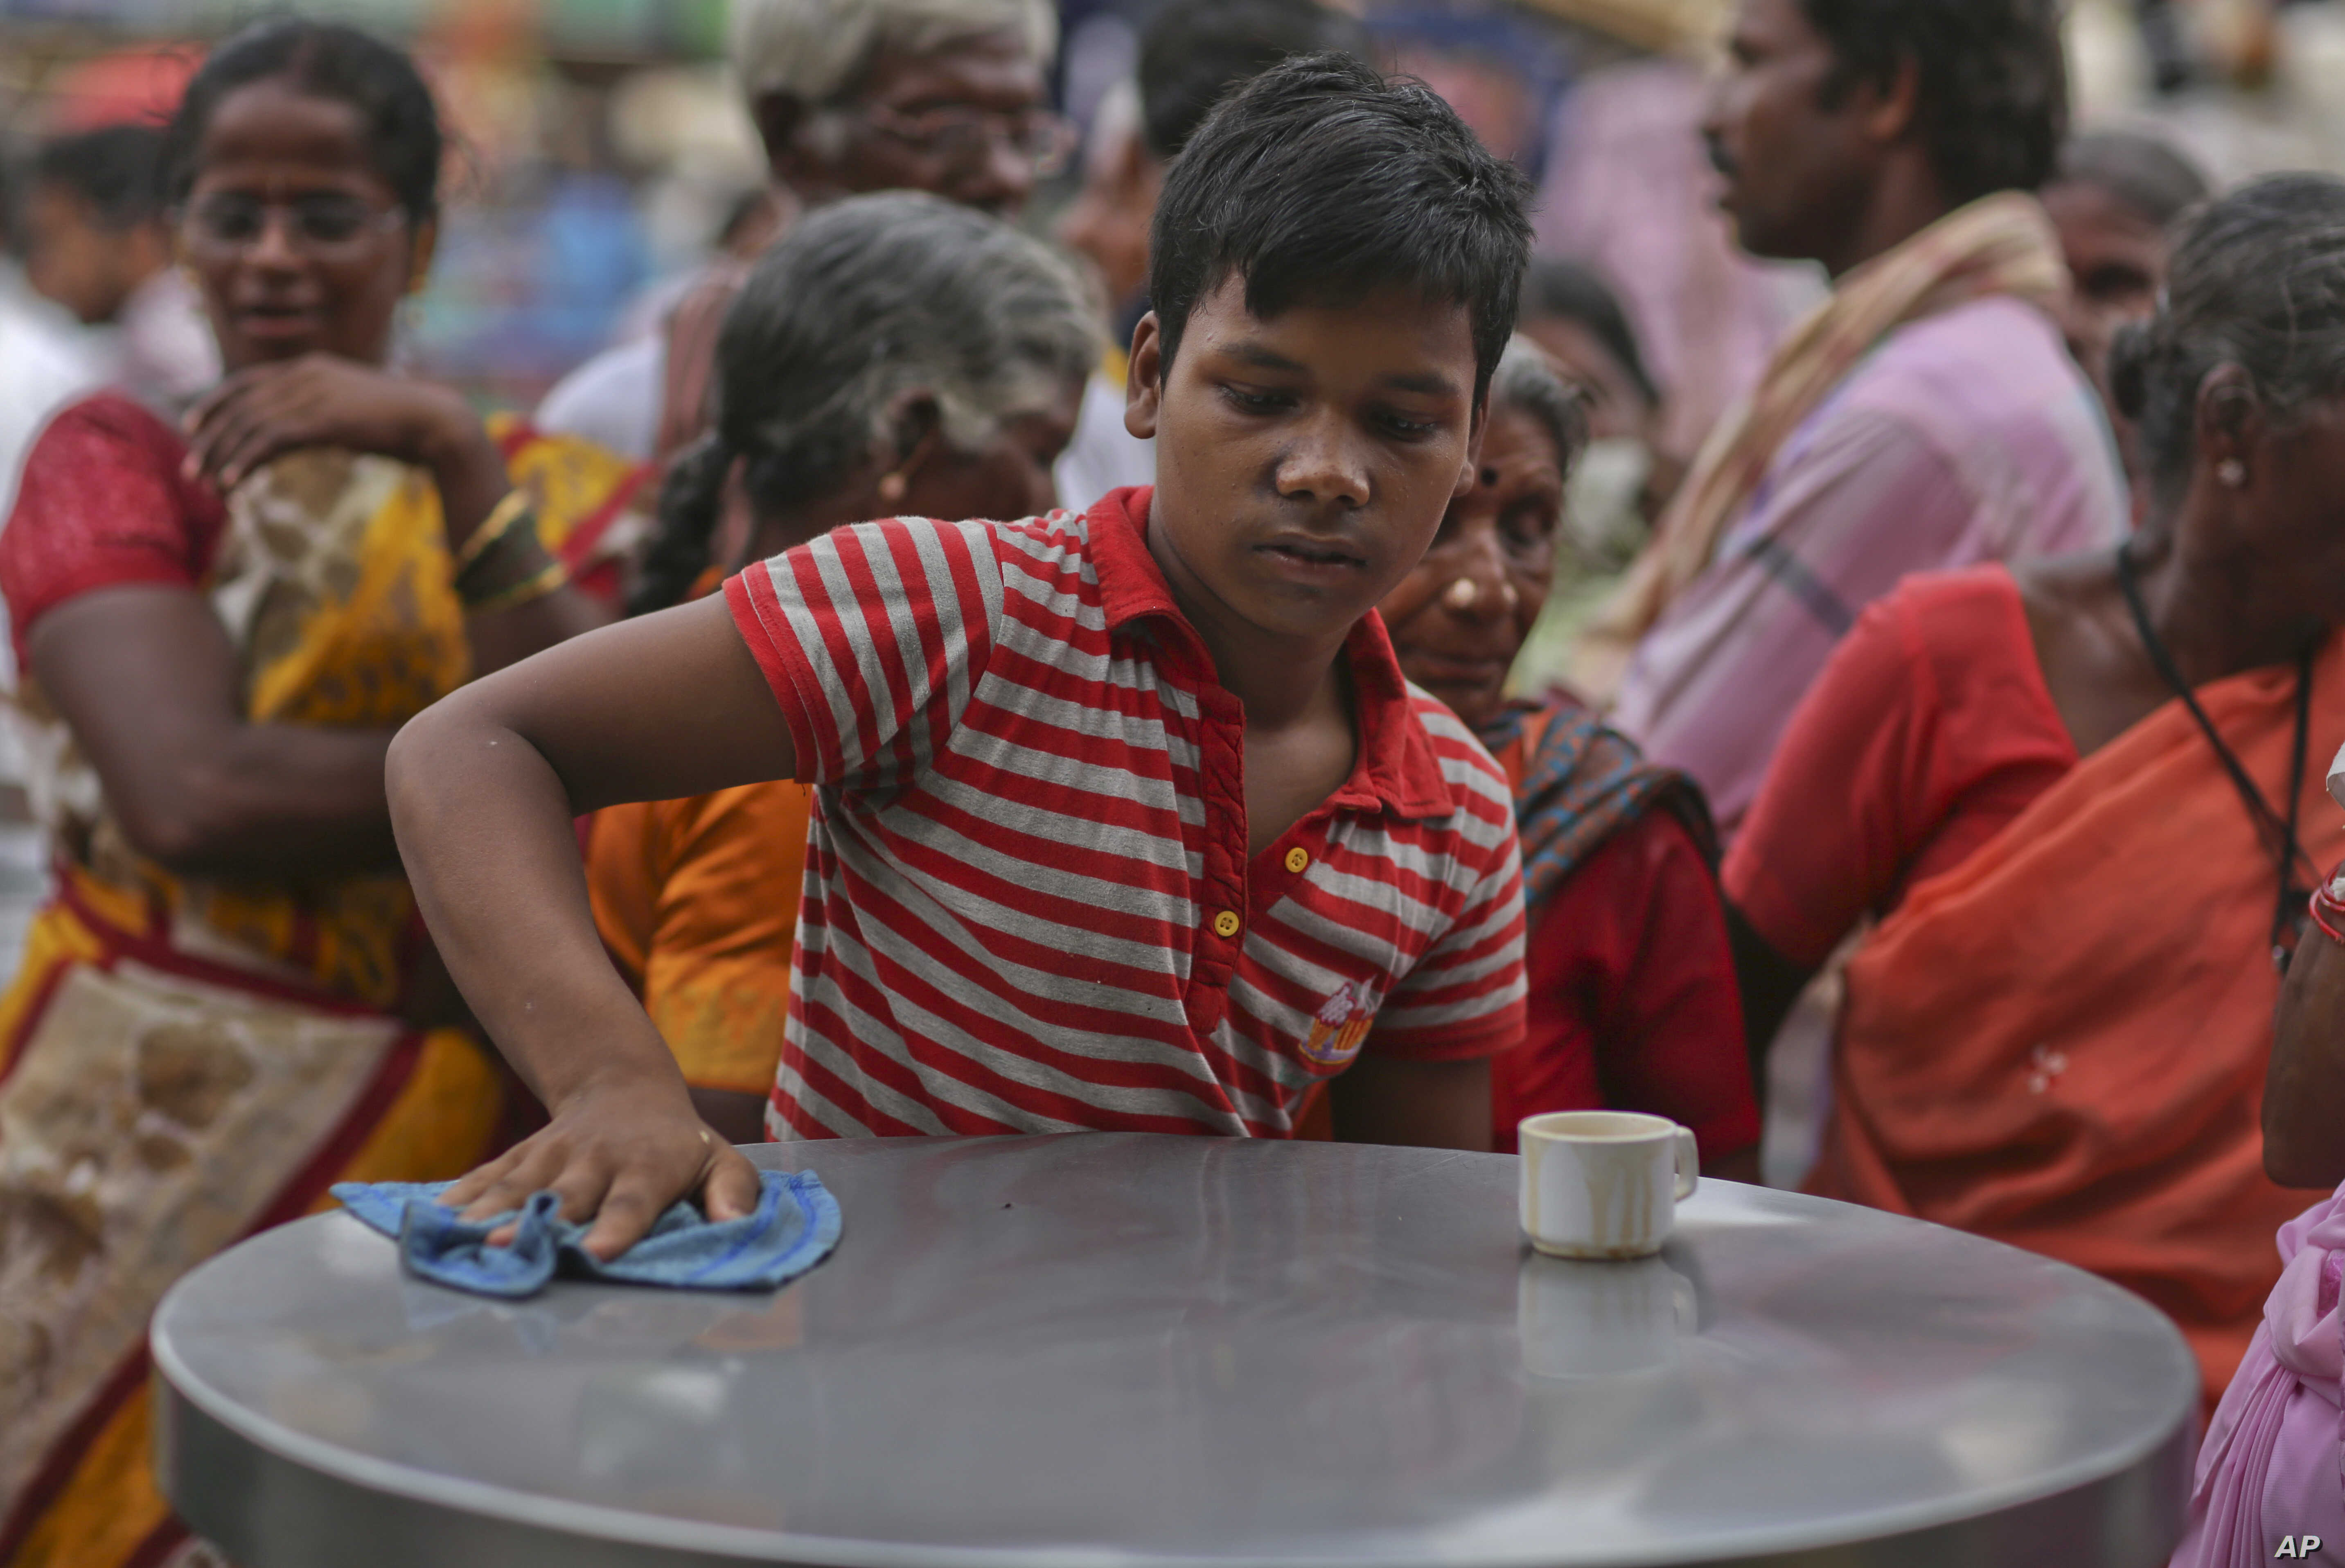 Child Labor Rising Sharply in India's Cities, Report Says | Voice of